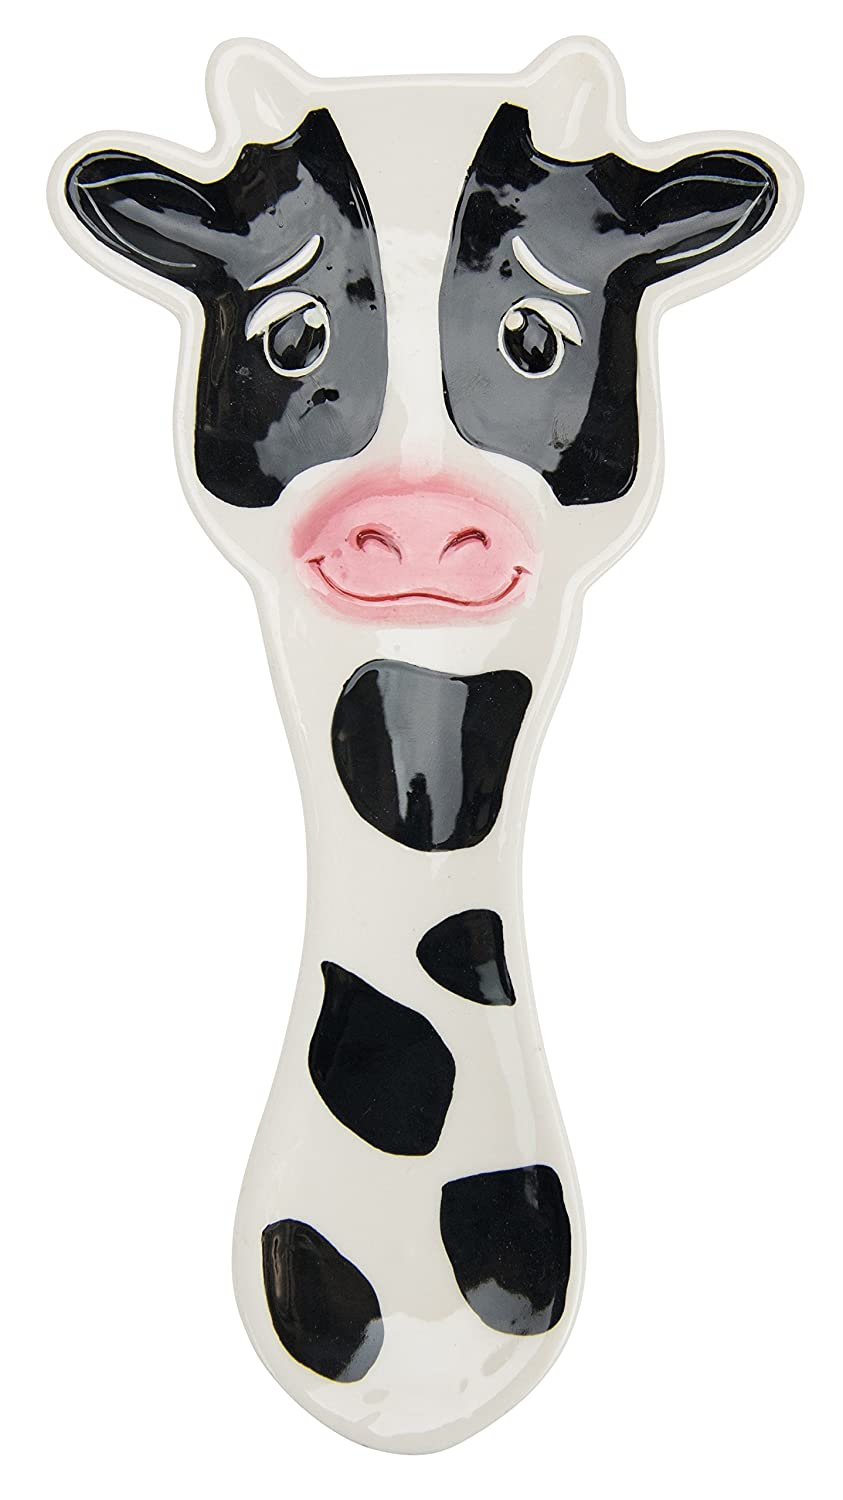 Boston Warehouse Udderly Cow Spoon Rest, Hand Painted Ceramic